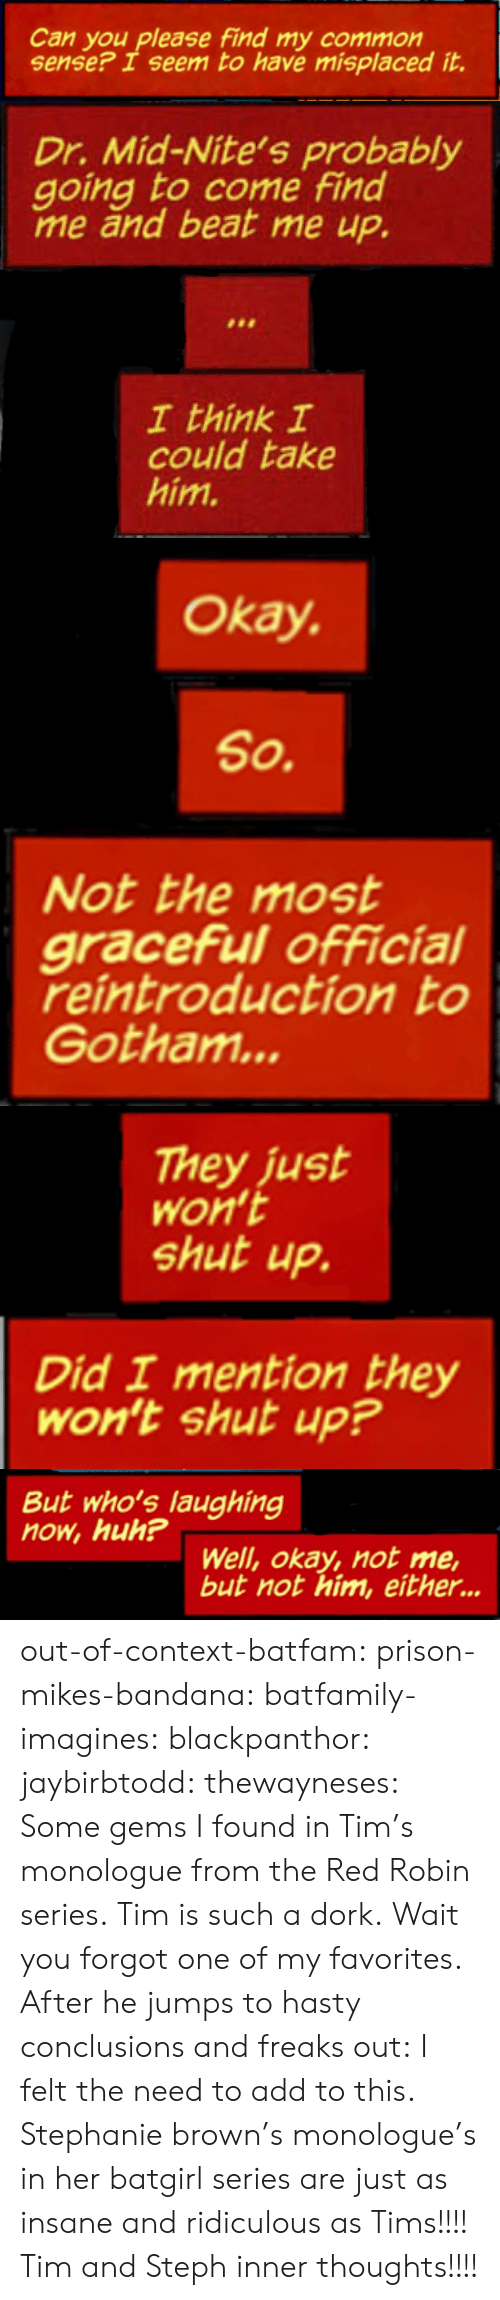 Huh, Shut Up, and Target: Can you please find my common  sense? I seem to have misplaced it.   Dr. Mid-Nite's probably  going to come find  me and beat me up.  I think I  could take  him.   Okay.  So.  Not the most  graceful official  reintroduction to  Gotham...   They just  Won't  shut up.  Did I mention they  Won't shut up?   But who's laughing  now, huh?  Well, okay, not me,  but not him, either... out-of-context-batfam: prison-mikes-bandana:   batfamily-imagines:  blackpanthor:  jaybirbtodd:  thewayneses:  Some gems I found in Tim's monologue from the Red Robin series. Tim is such a dork.  Wait you forgot one of my favorites. After he jumps to hasty conclusions and freaks out:    I felt the need to add to this.   Stephanie brown's monologue's in her batgirl series are just as insane and ridiculous as Tims!!!!     Tim and Steph inner thoughts!!!!